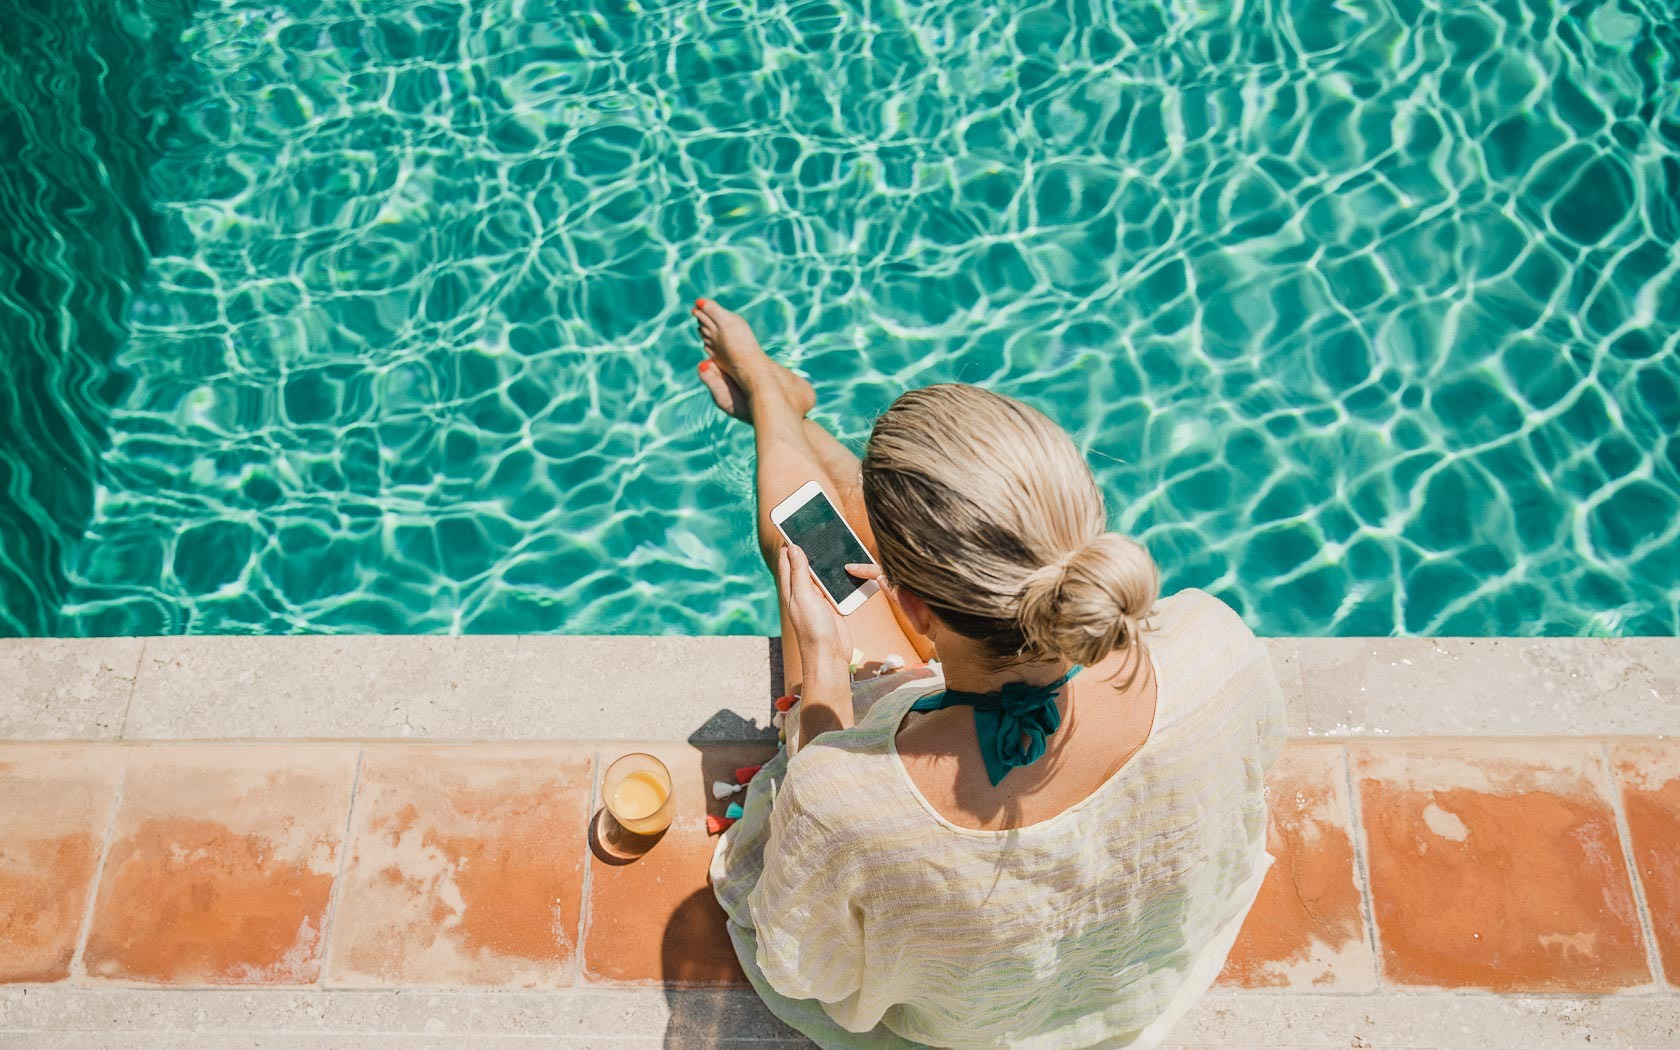 overhead view of a woman sitting by the edge of the pool on her phone